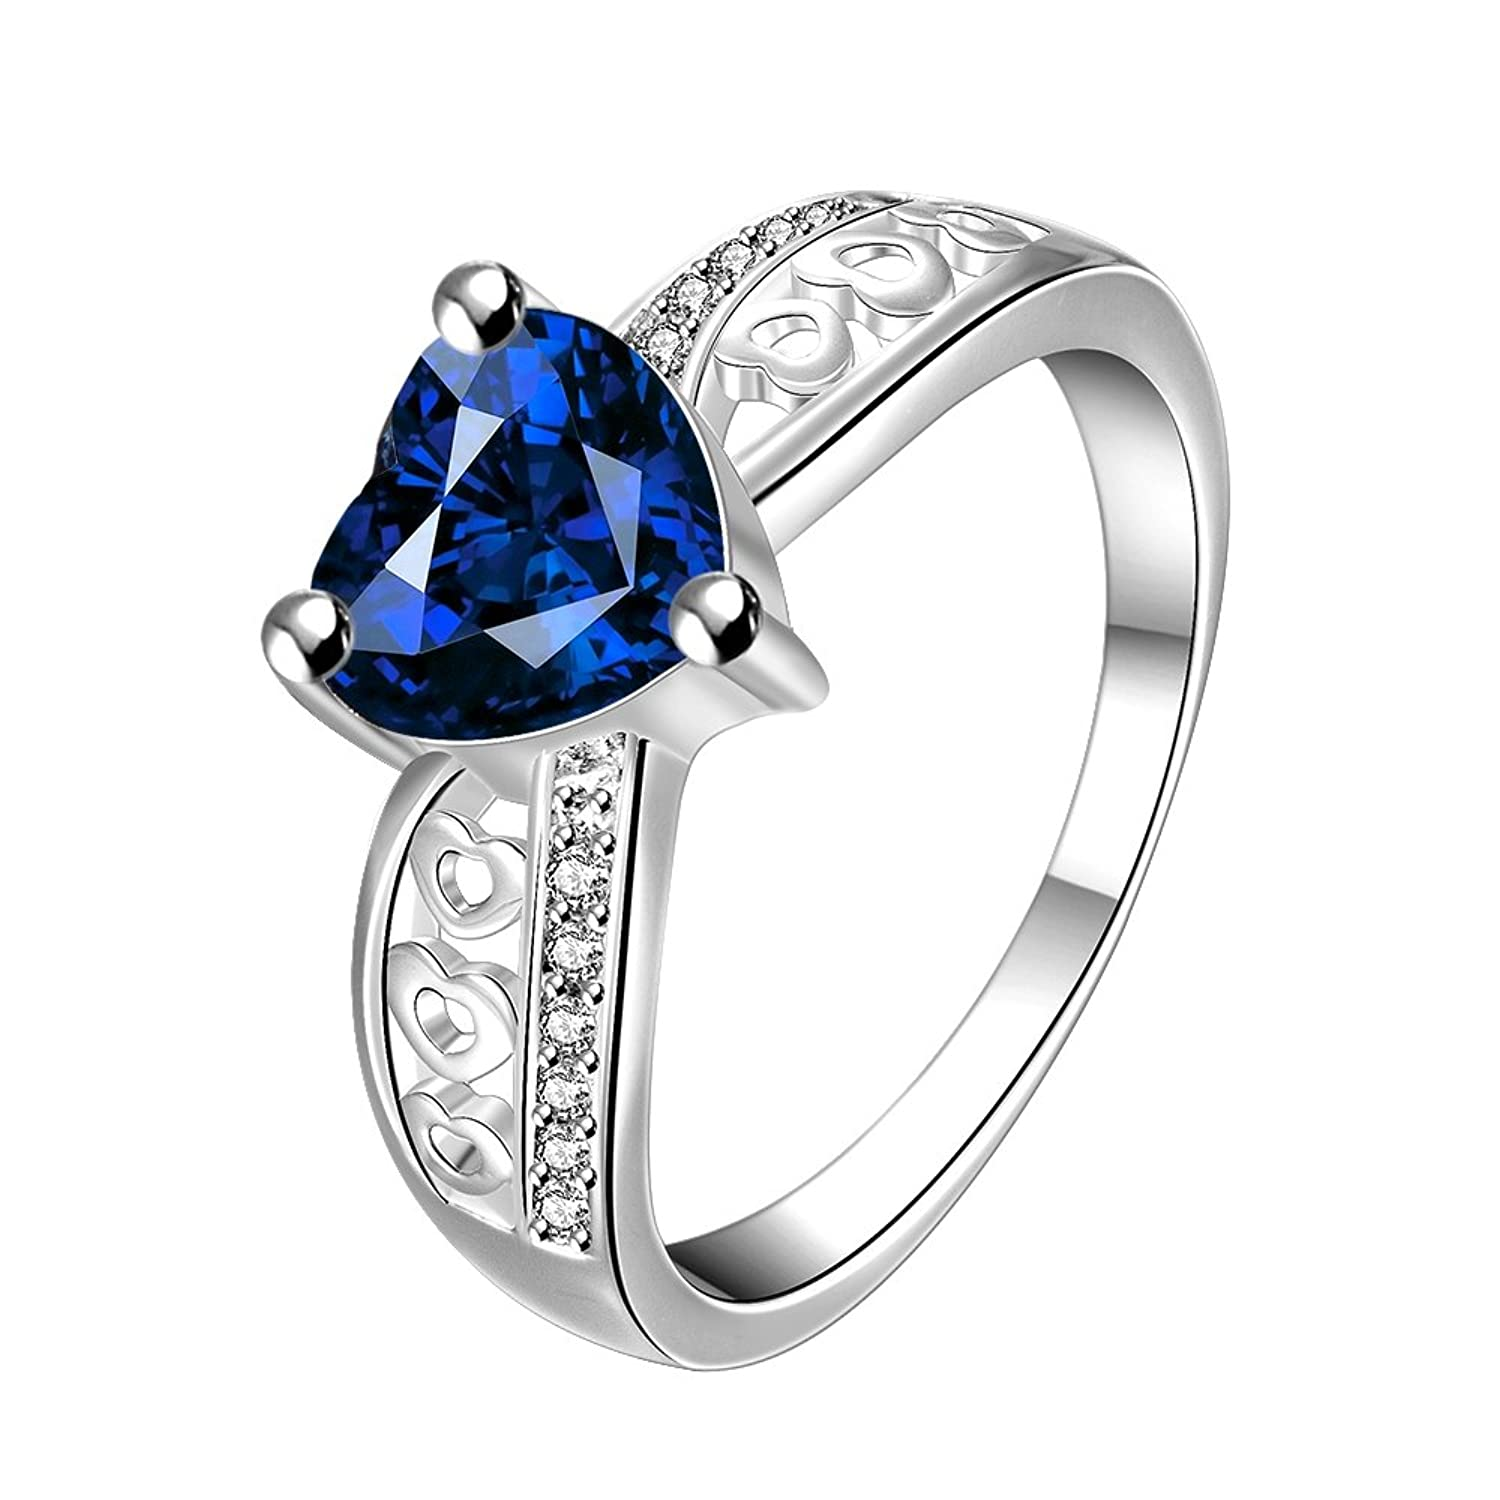 showcase goldsmiths wave platinum coloured sapphire engagement rings and blue royal ring gemstone mccaul